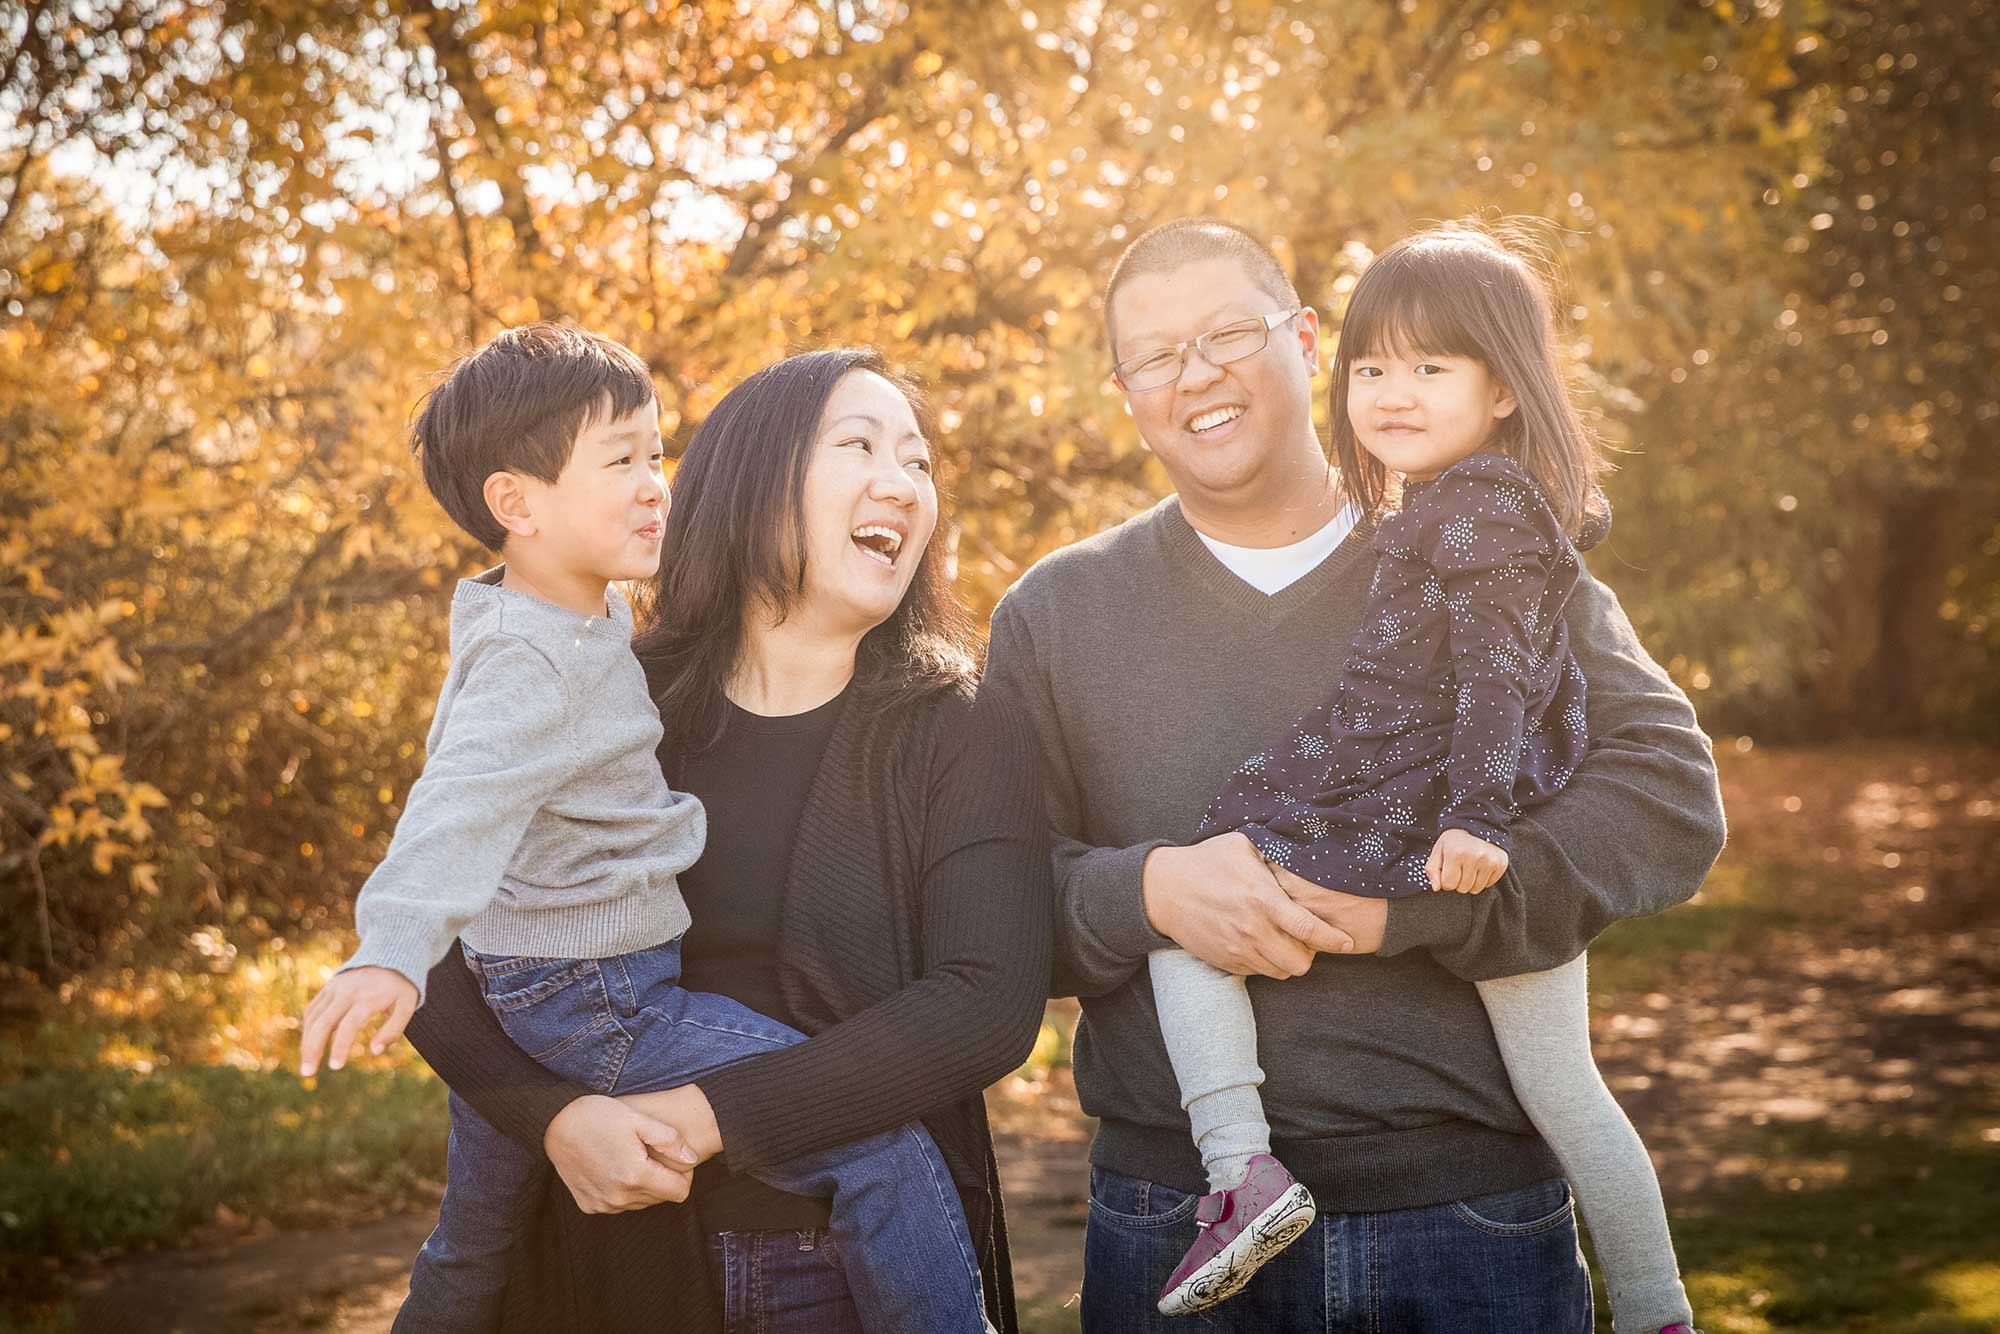 Fall trout Lake vancouver family photo session